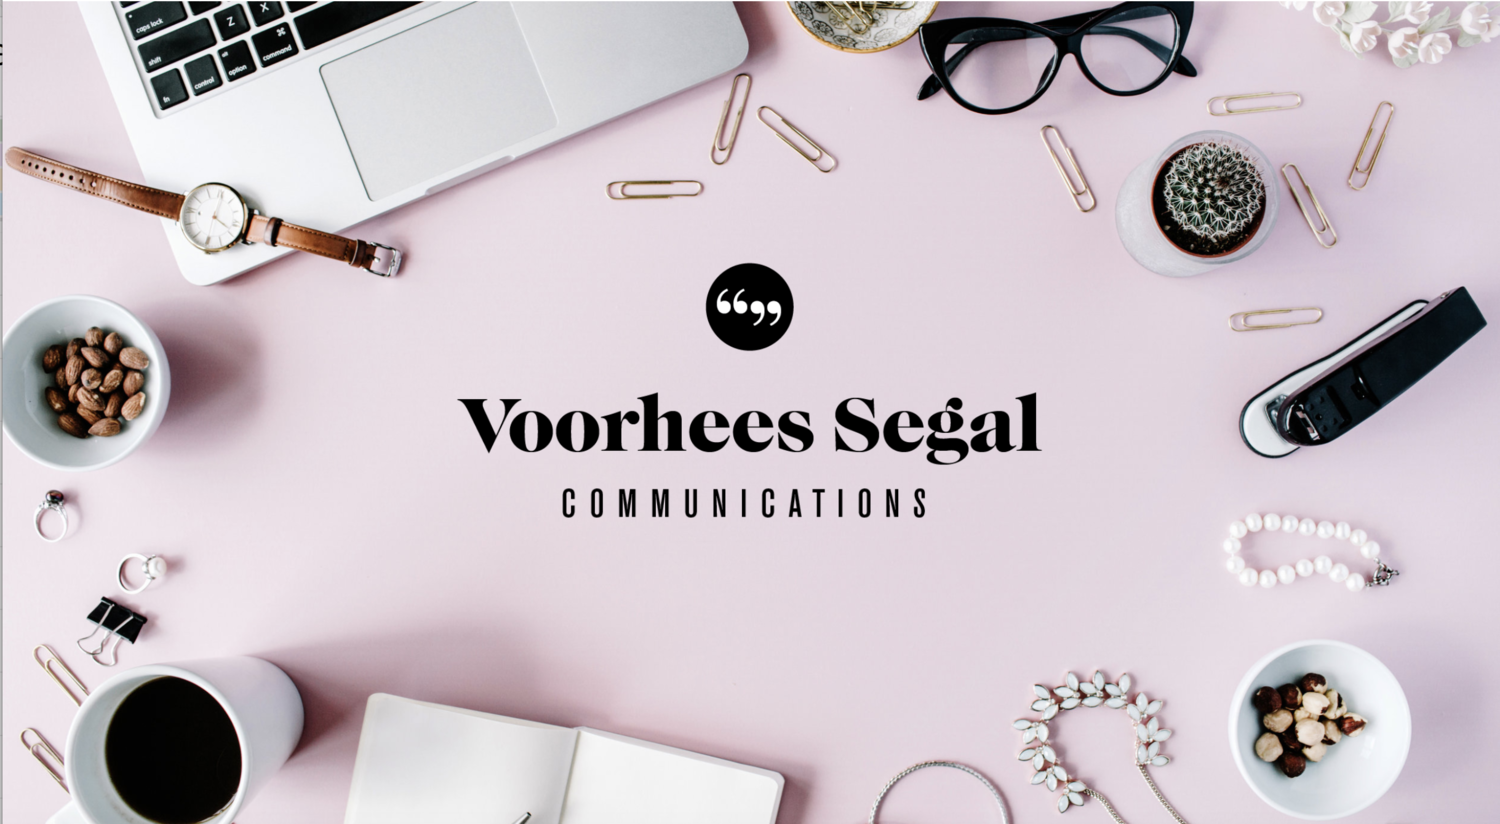 Voorhees Segal Communications